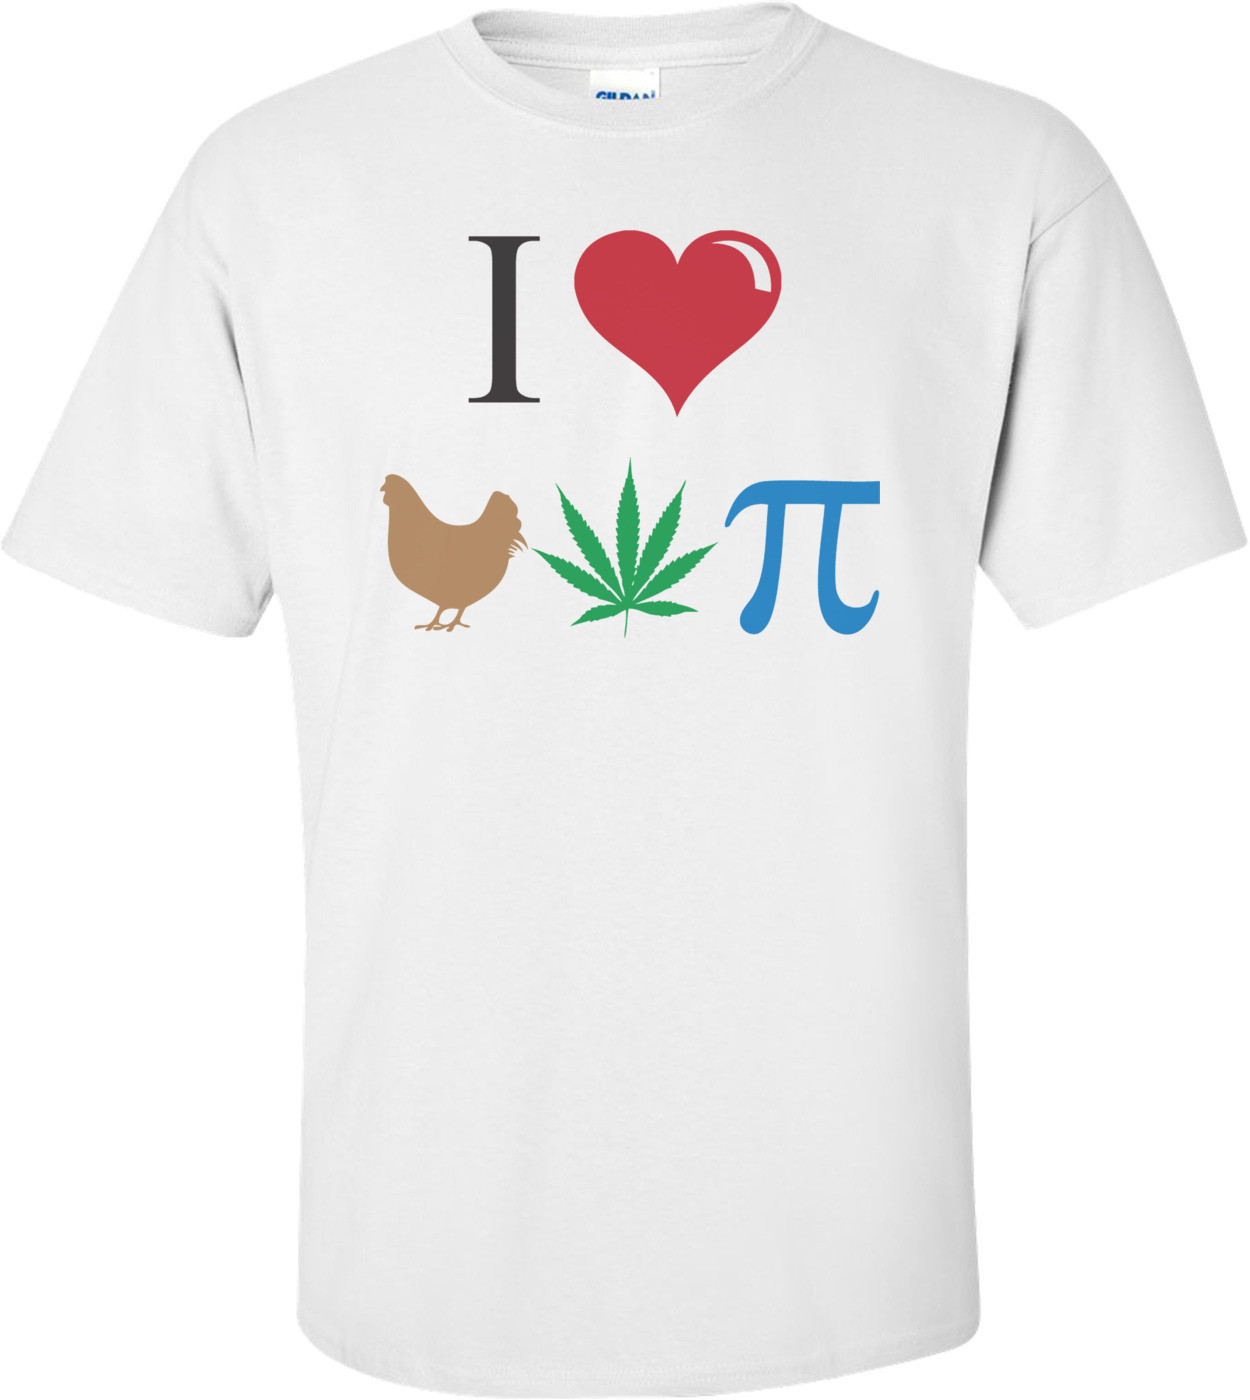 I Love Chicken Pot Pie Funny T-shirt